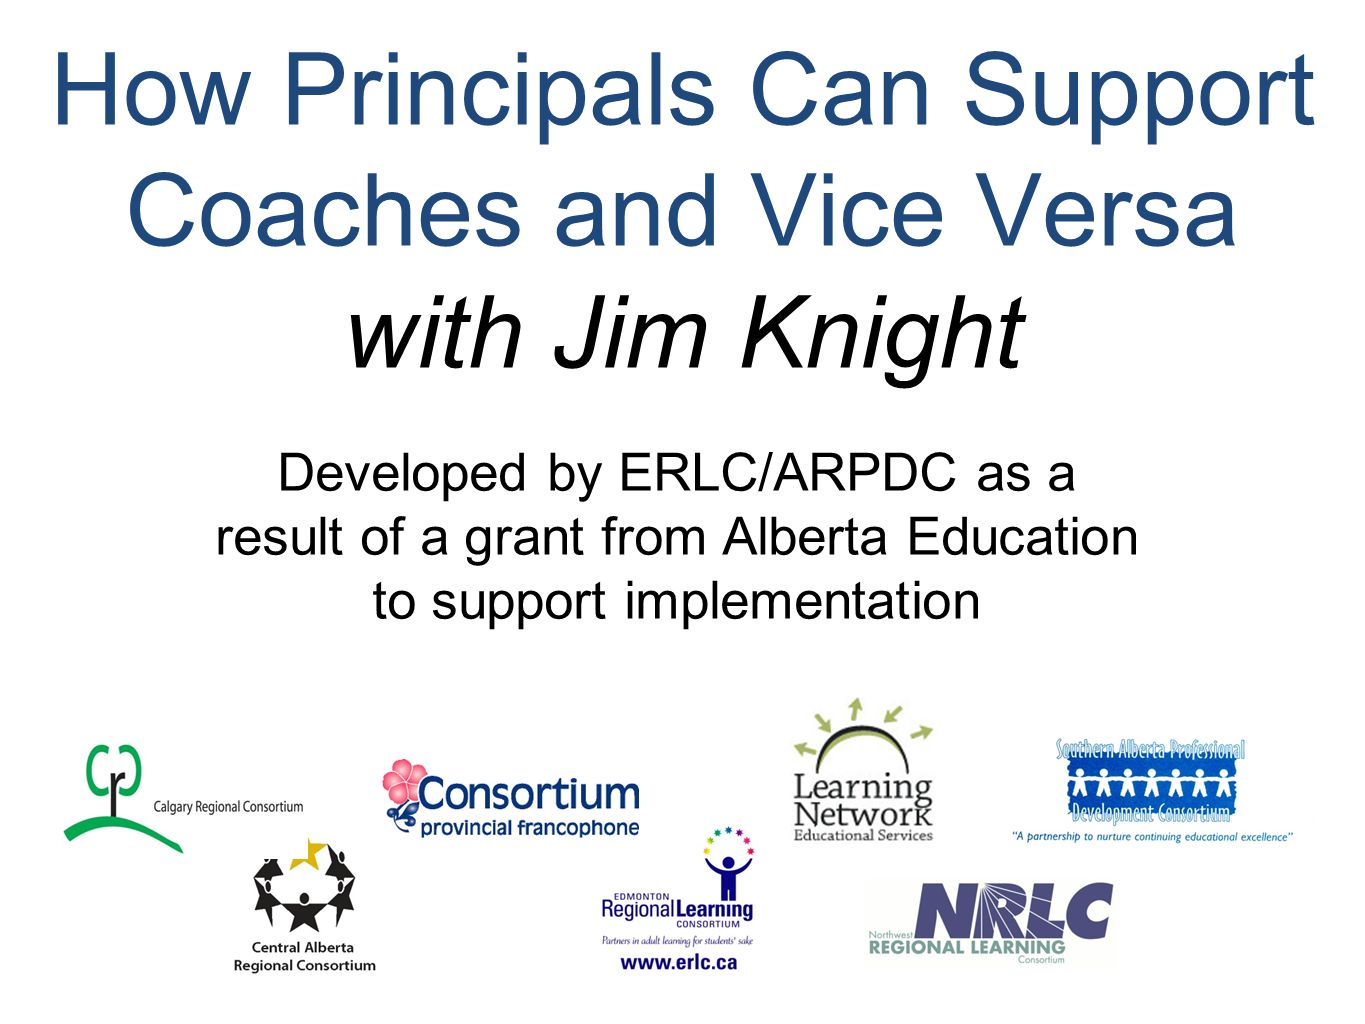 How Principals Can Support Coaches and Vice Versa with Jim Knight Developed by ERLC/ARPDC as a result of a grant from Alberta Education to support implementation